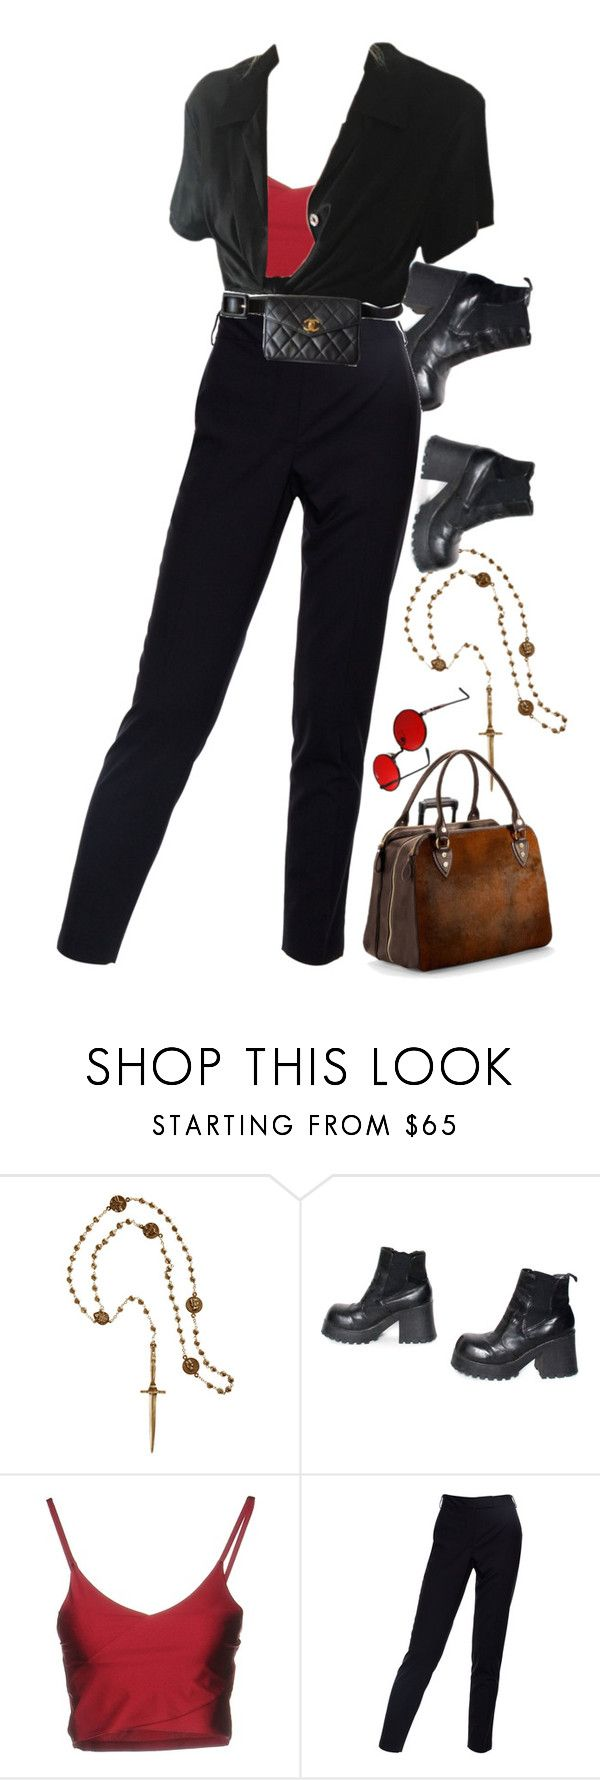 """""""Untitled #436"""" by okay-aliya on Polyvore featuring Pamela Love, Boutique de la Femme, Paul Smith, Chanel and Aspinal of London"""